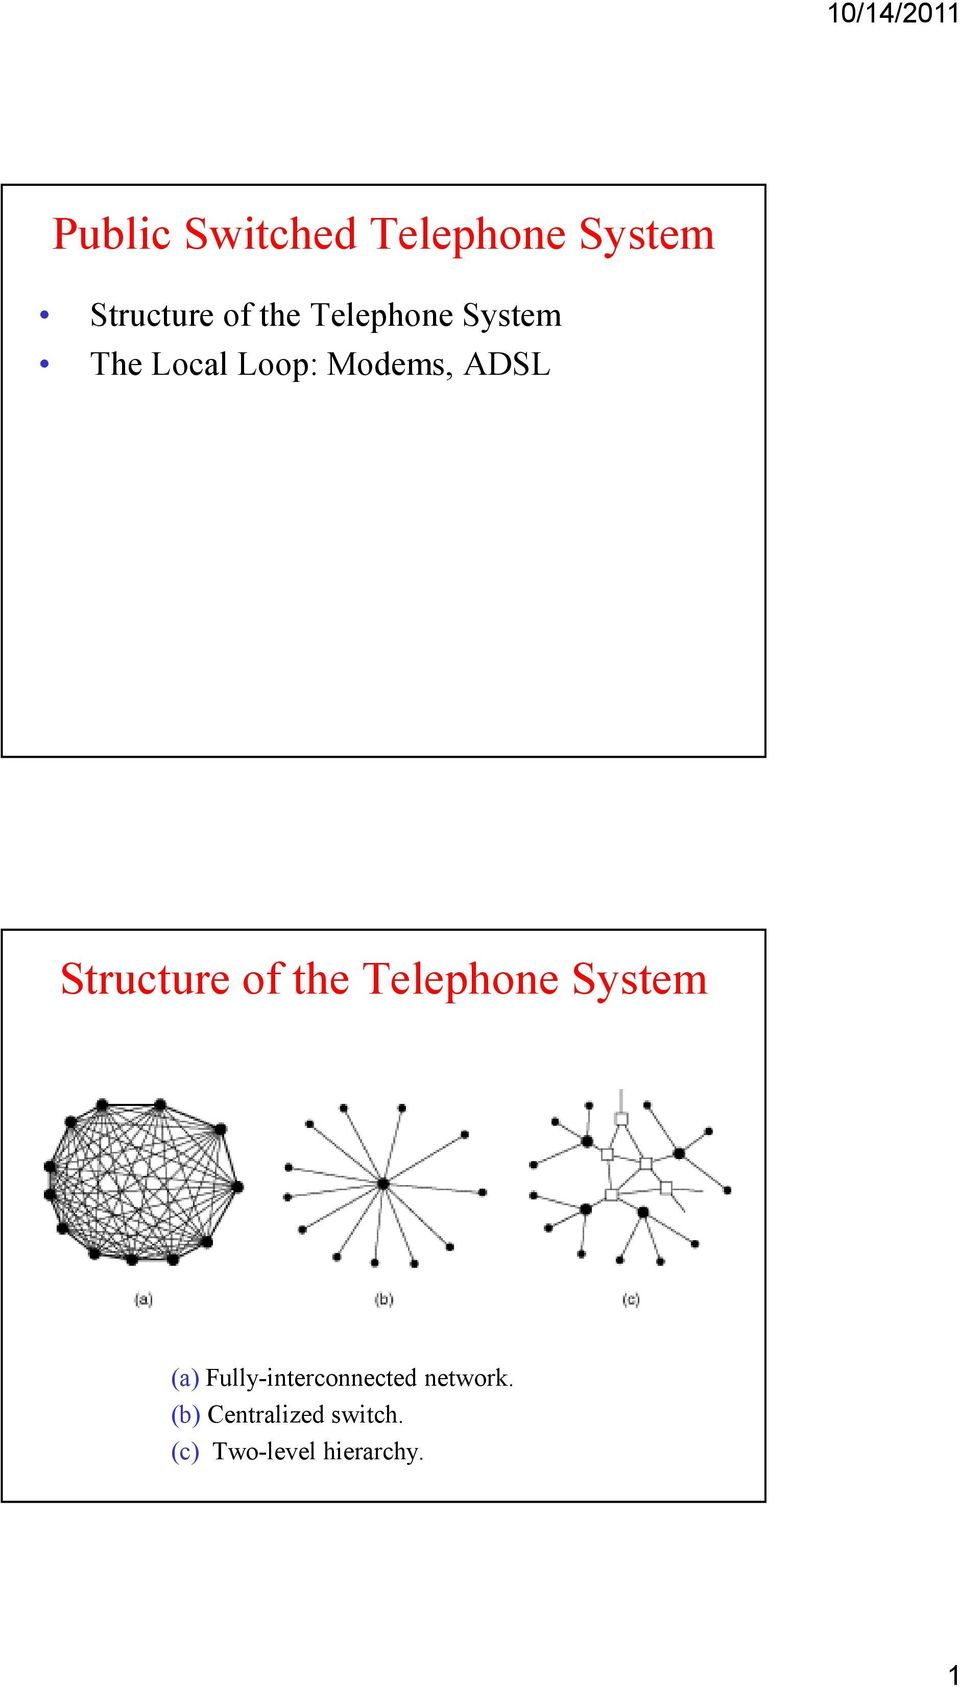 Structure of the Telephone System (a)